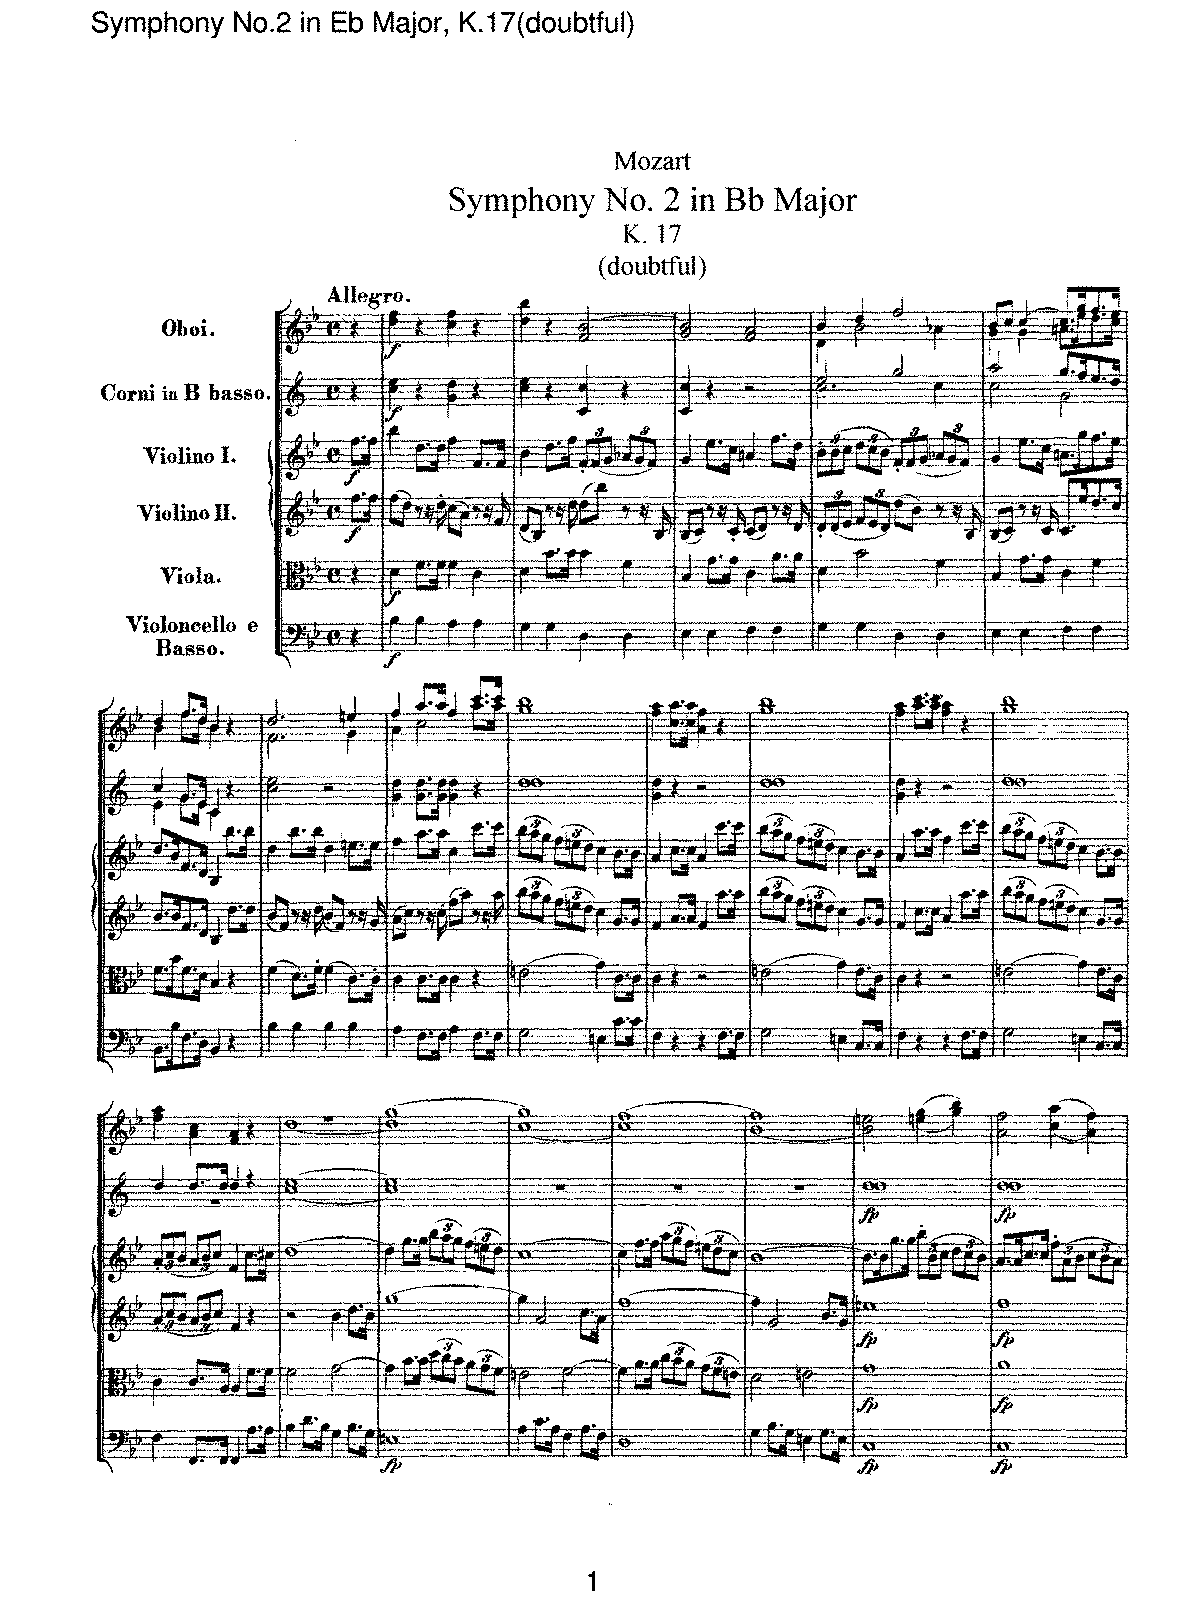 Mozart - Symphony No 02 in Bb Major (doubtful), K17.pdf